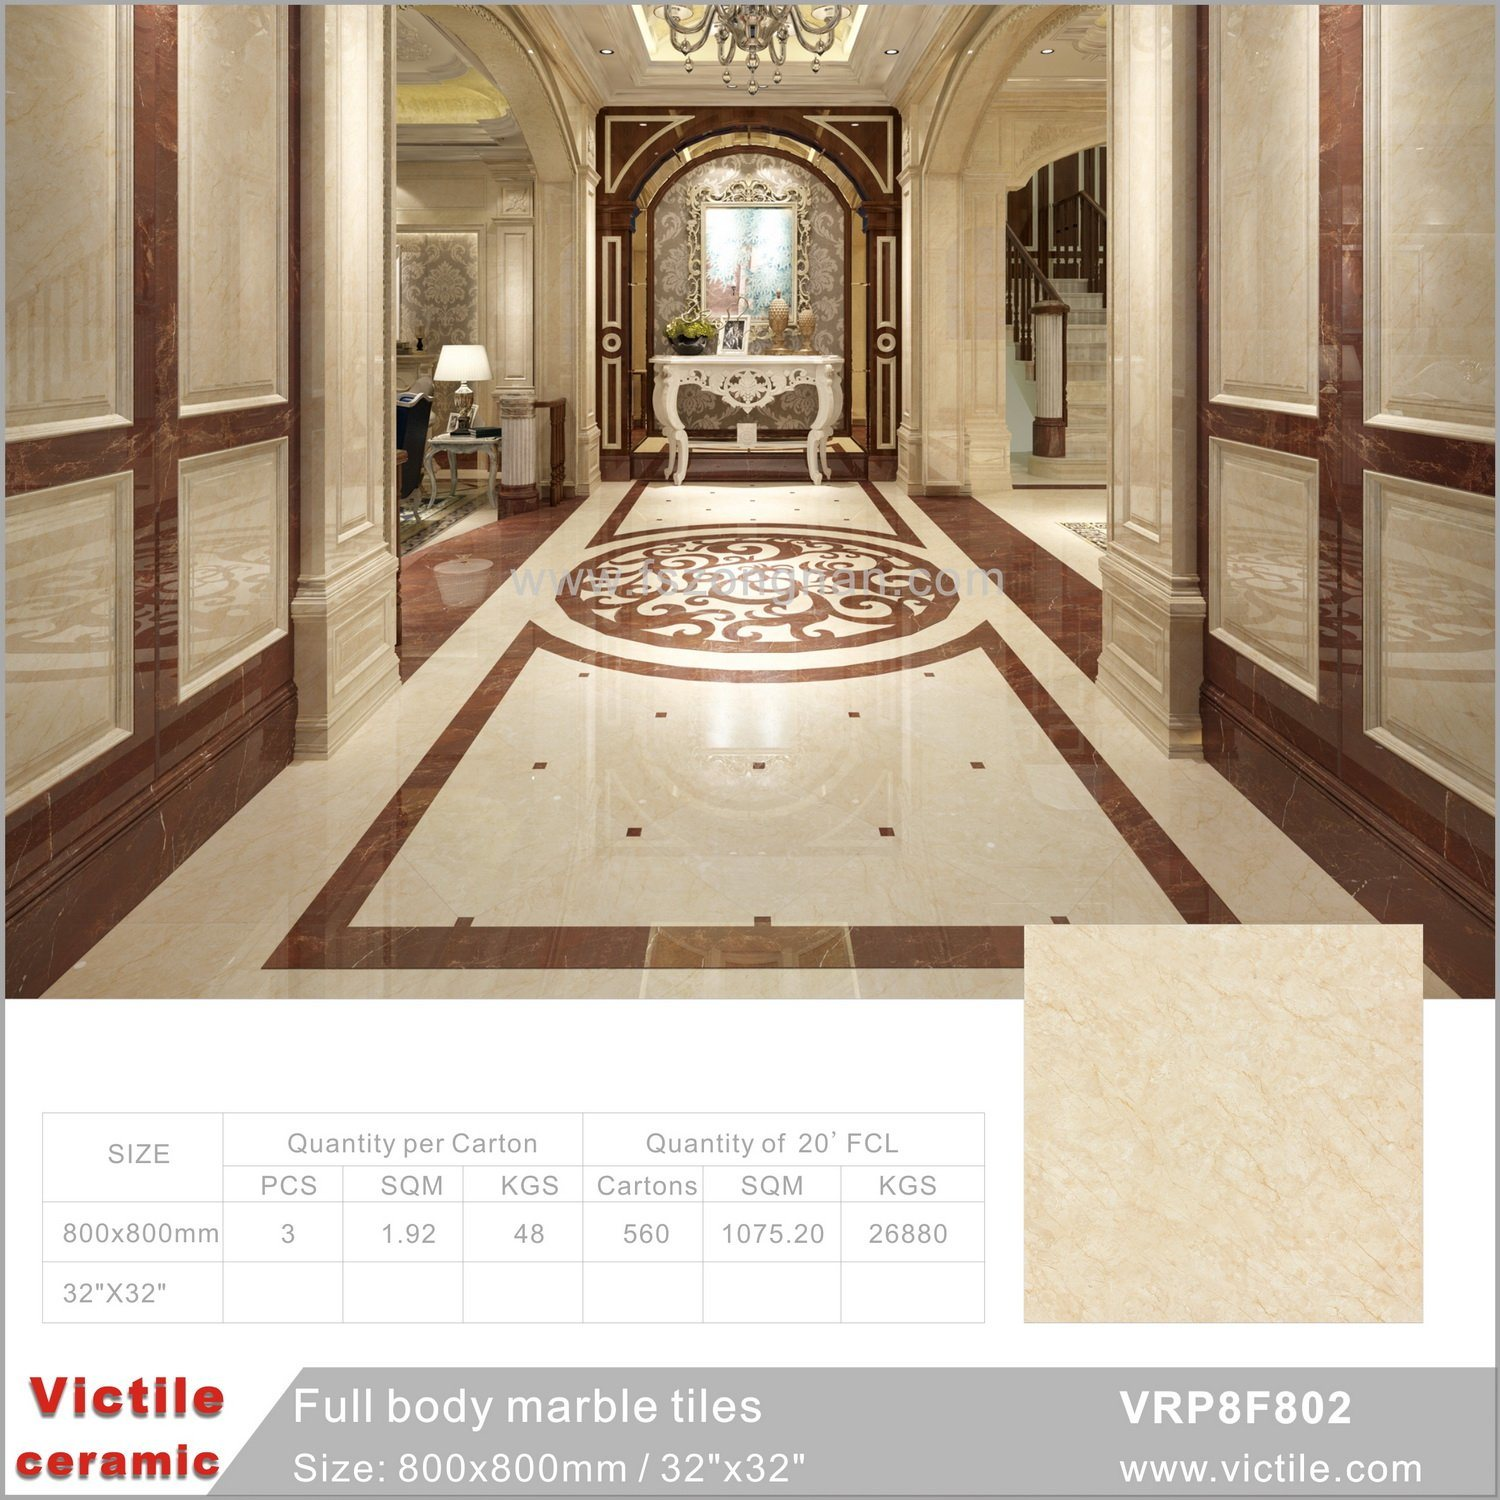 are different floors tile they gettyimages how porcelain ceramic vs